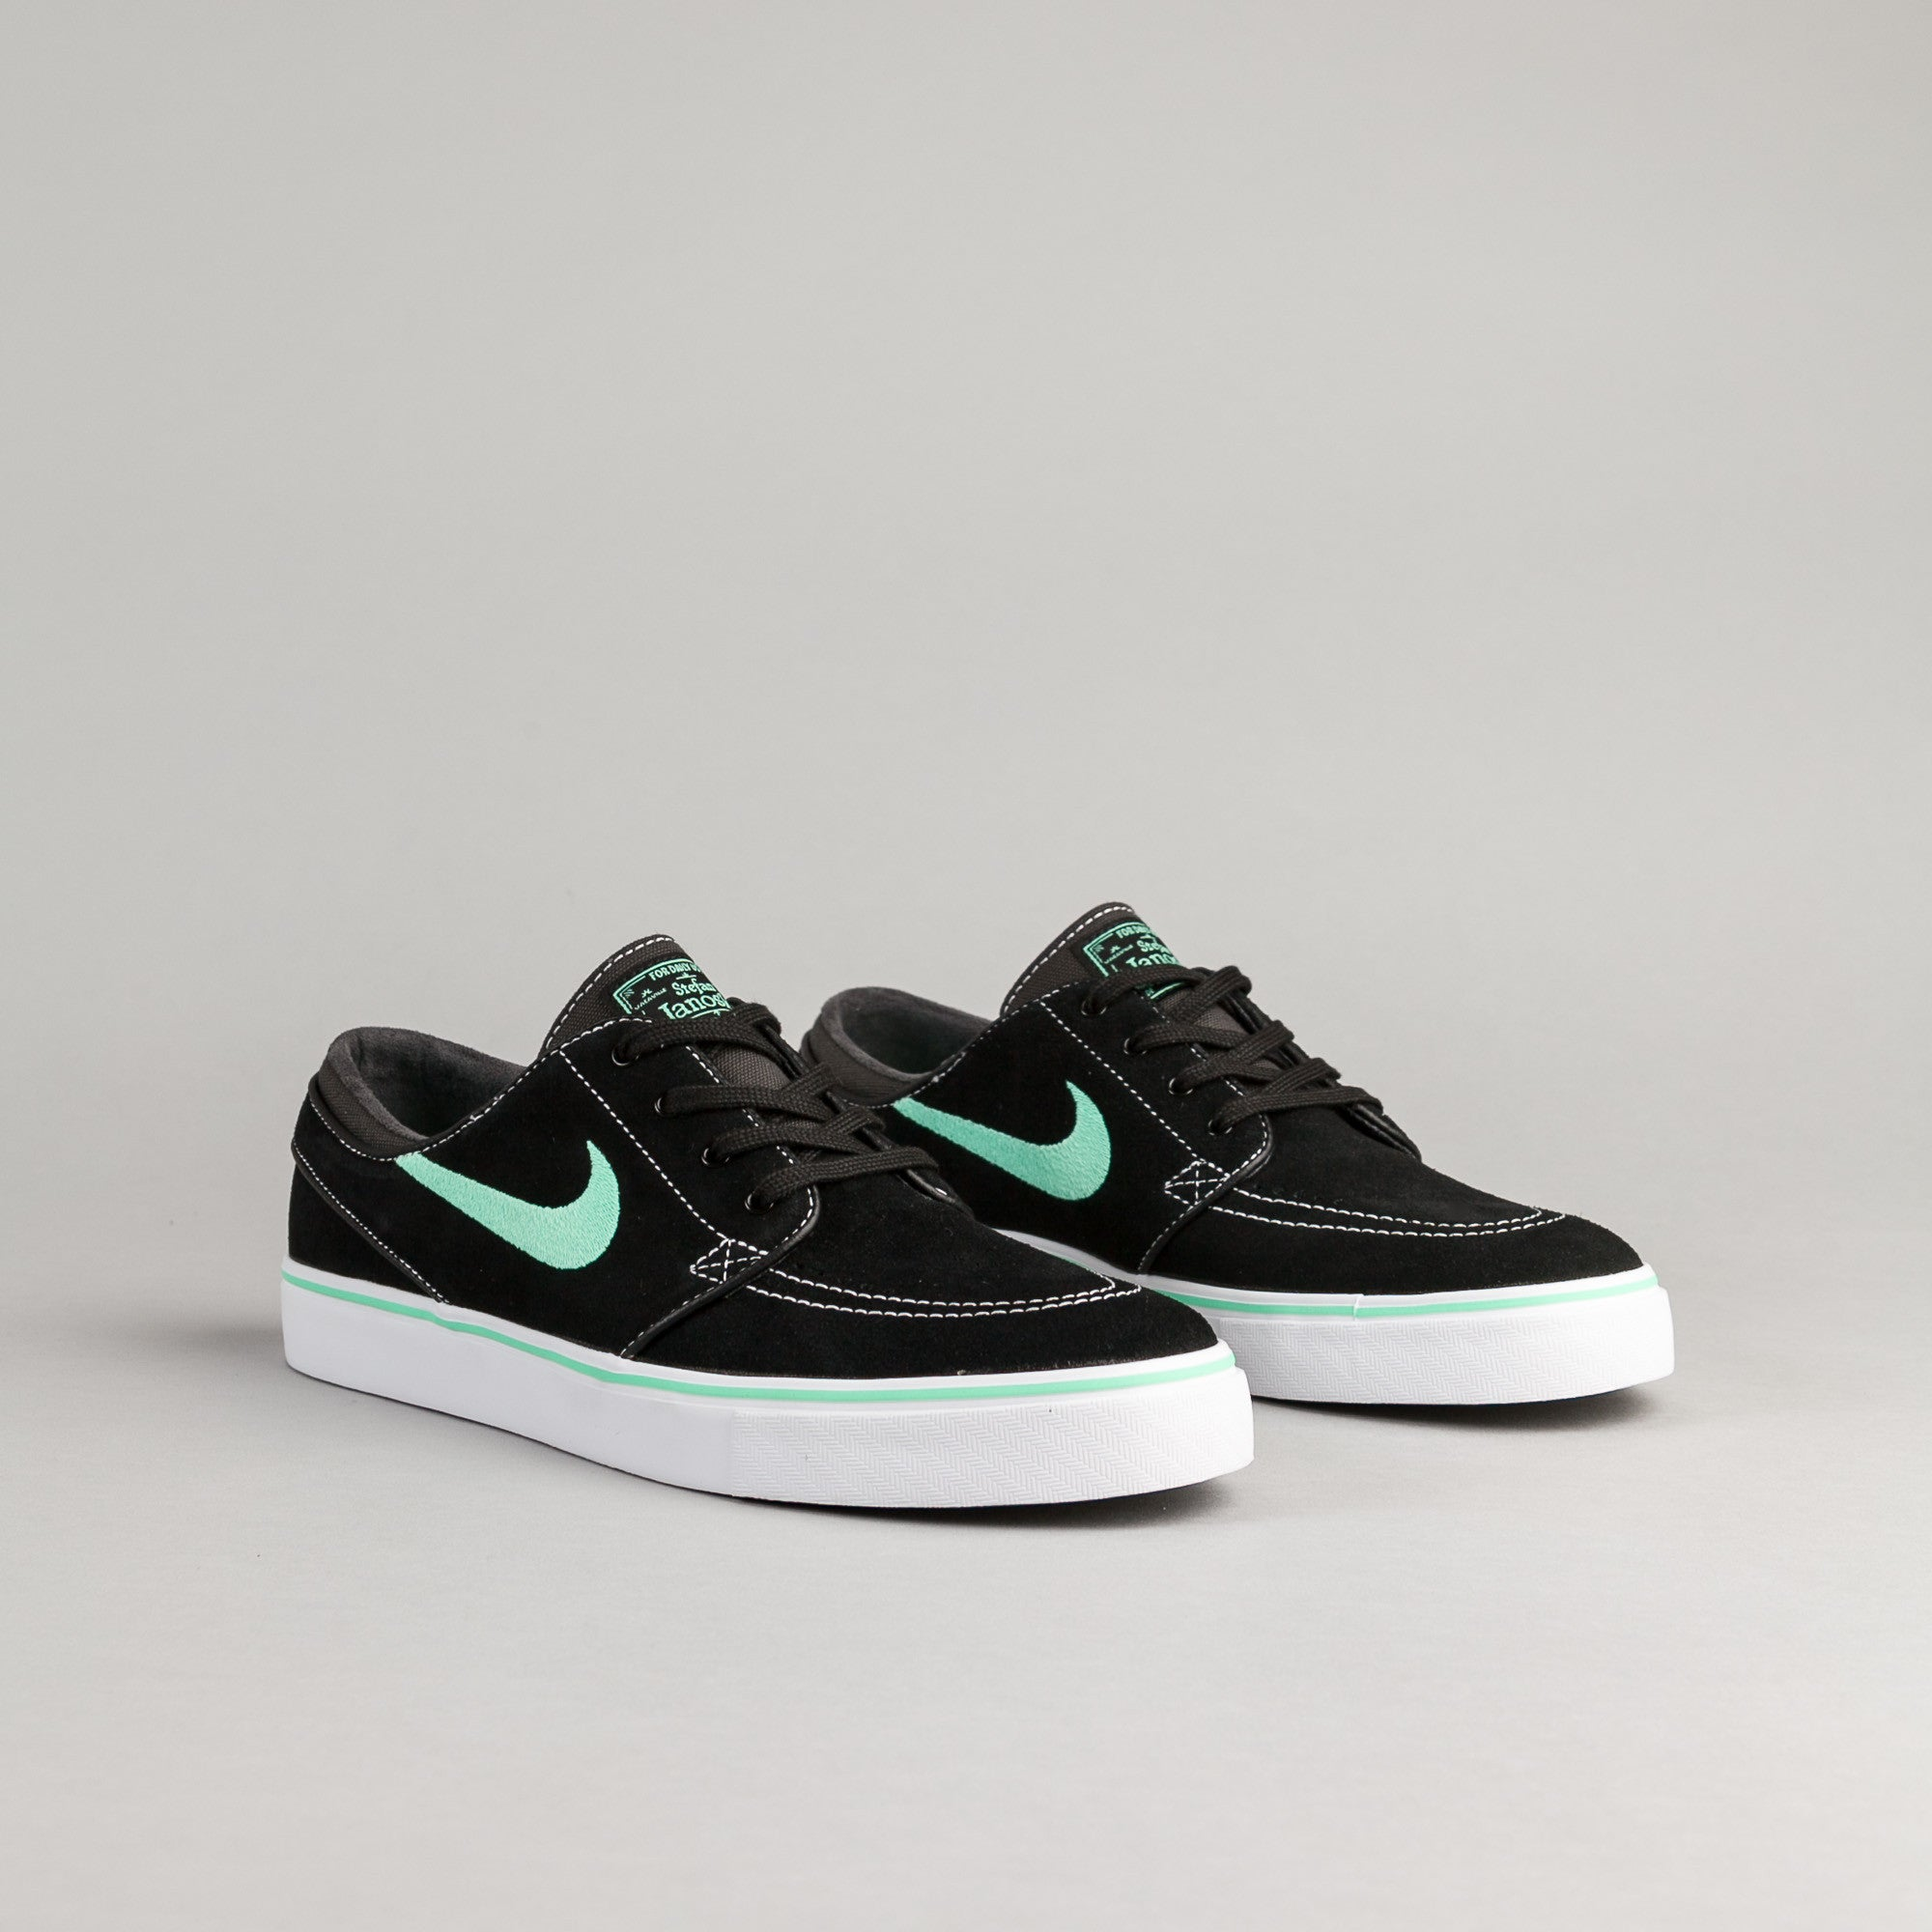 hot sale online dfe4b ee426 ... promo code for nike sb janoski shoes black anthracite 8fa68 7d76c